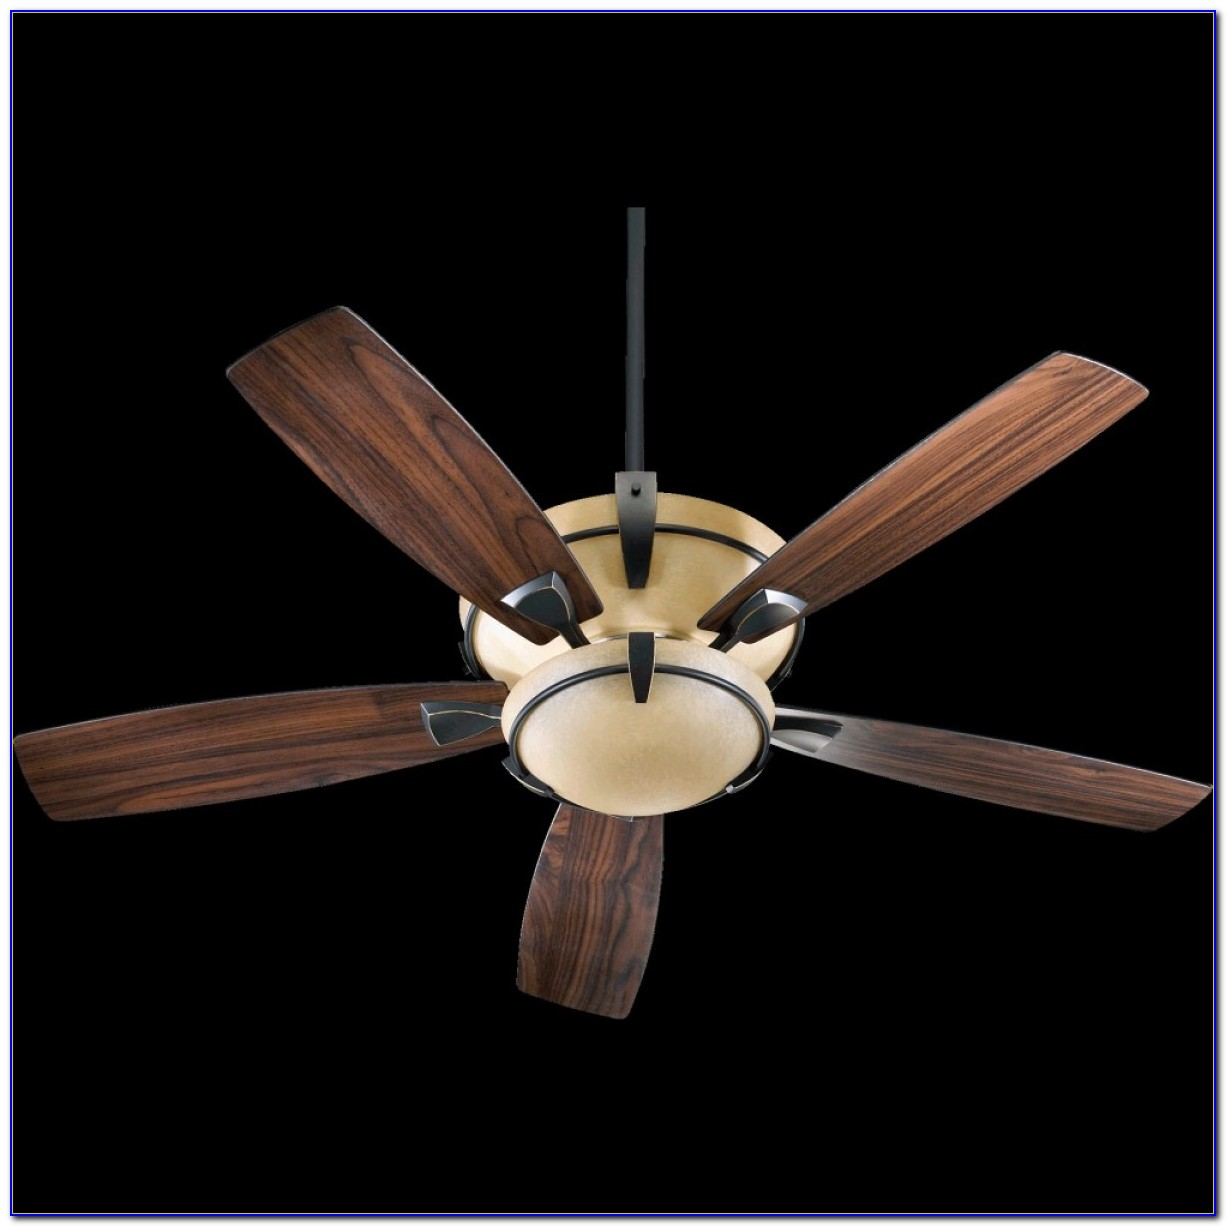 White Ceiling Fan With Uplight And Downlight